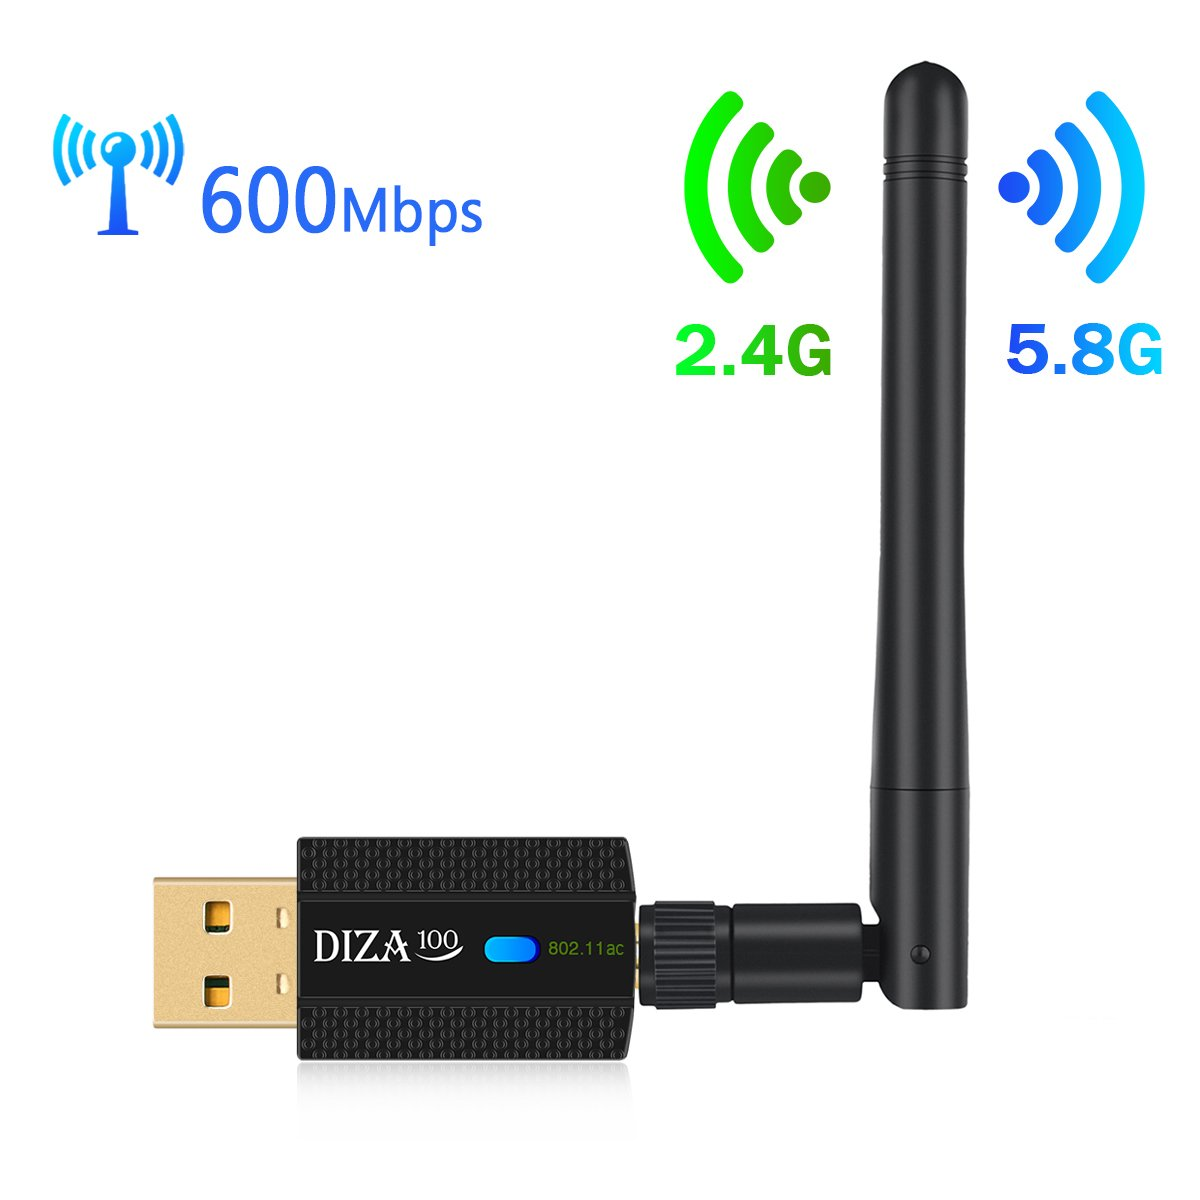 Wireless USB WiFi Adapter AC 600Mbps Dual Band 2.4G/150Mbps+5.8G/433Mbps WiFi Dongle with High-gain Antenna Complies with 802.11 b/g/n/ac Standard Supports Windows & Mac OS X System by DIZA100